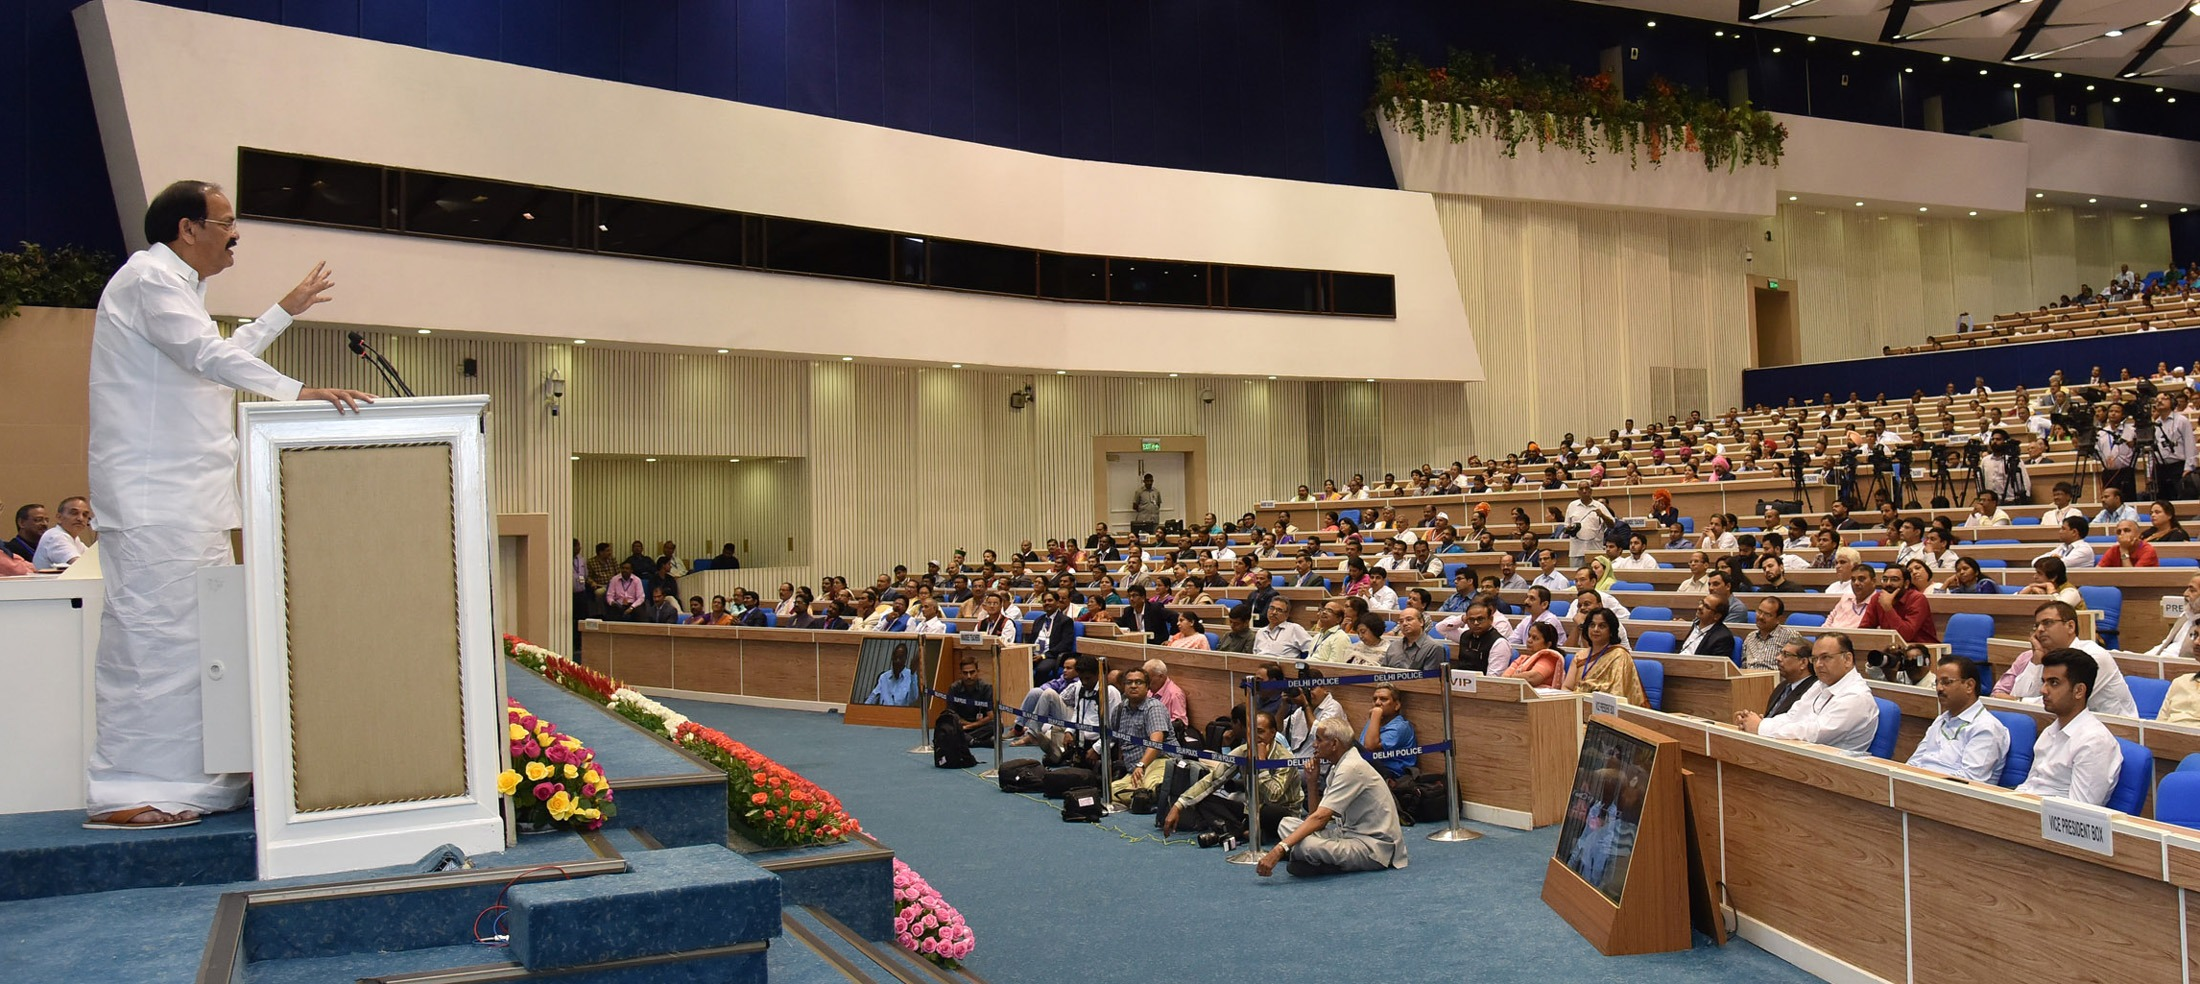 The Vice President, Shri M. Venkaiah Naidu addressing the gathering after presenting the National Award to Teachers – 2016, on the occasion of Teachers' Day, in New Delhi on September 05, 2017.